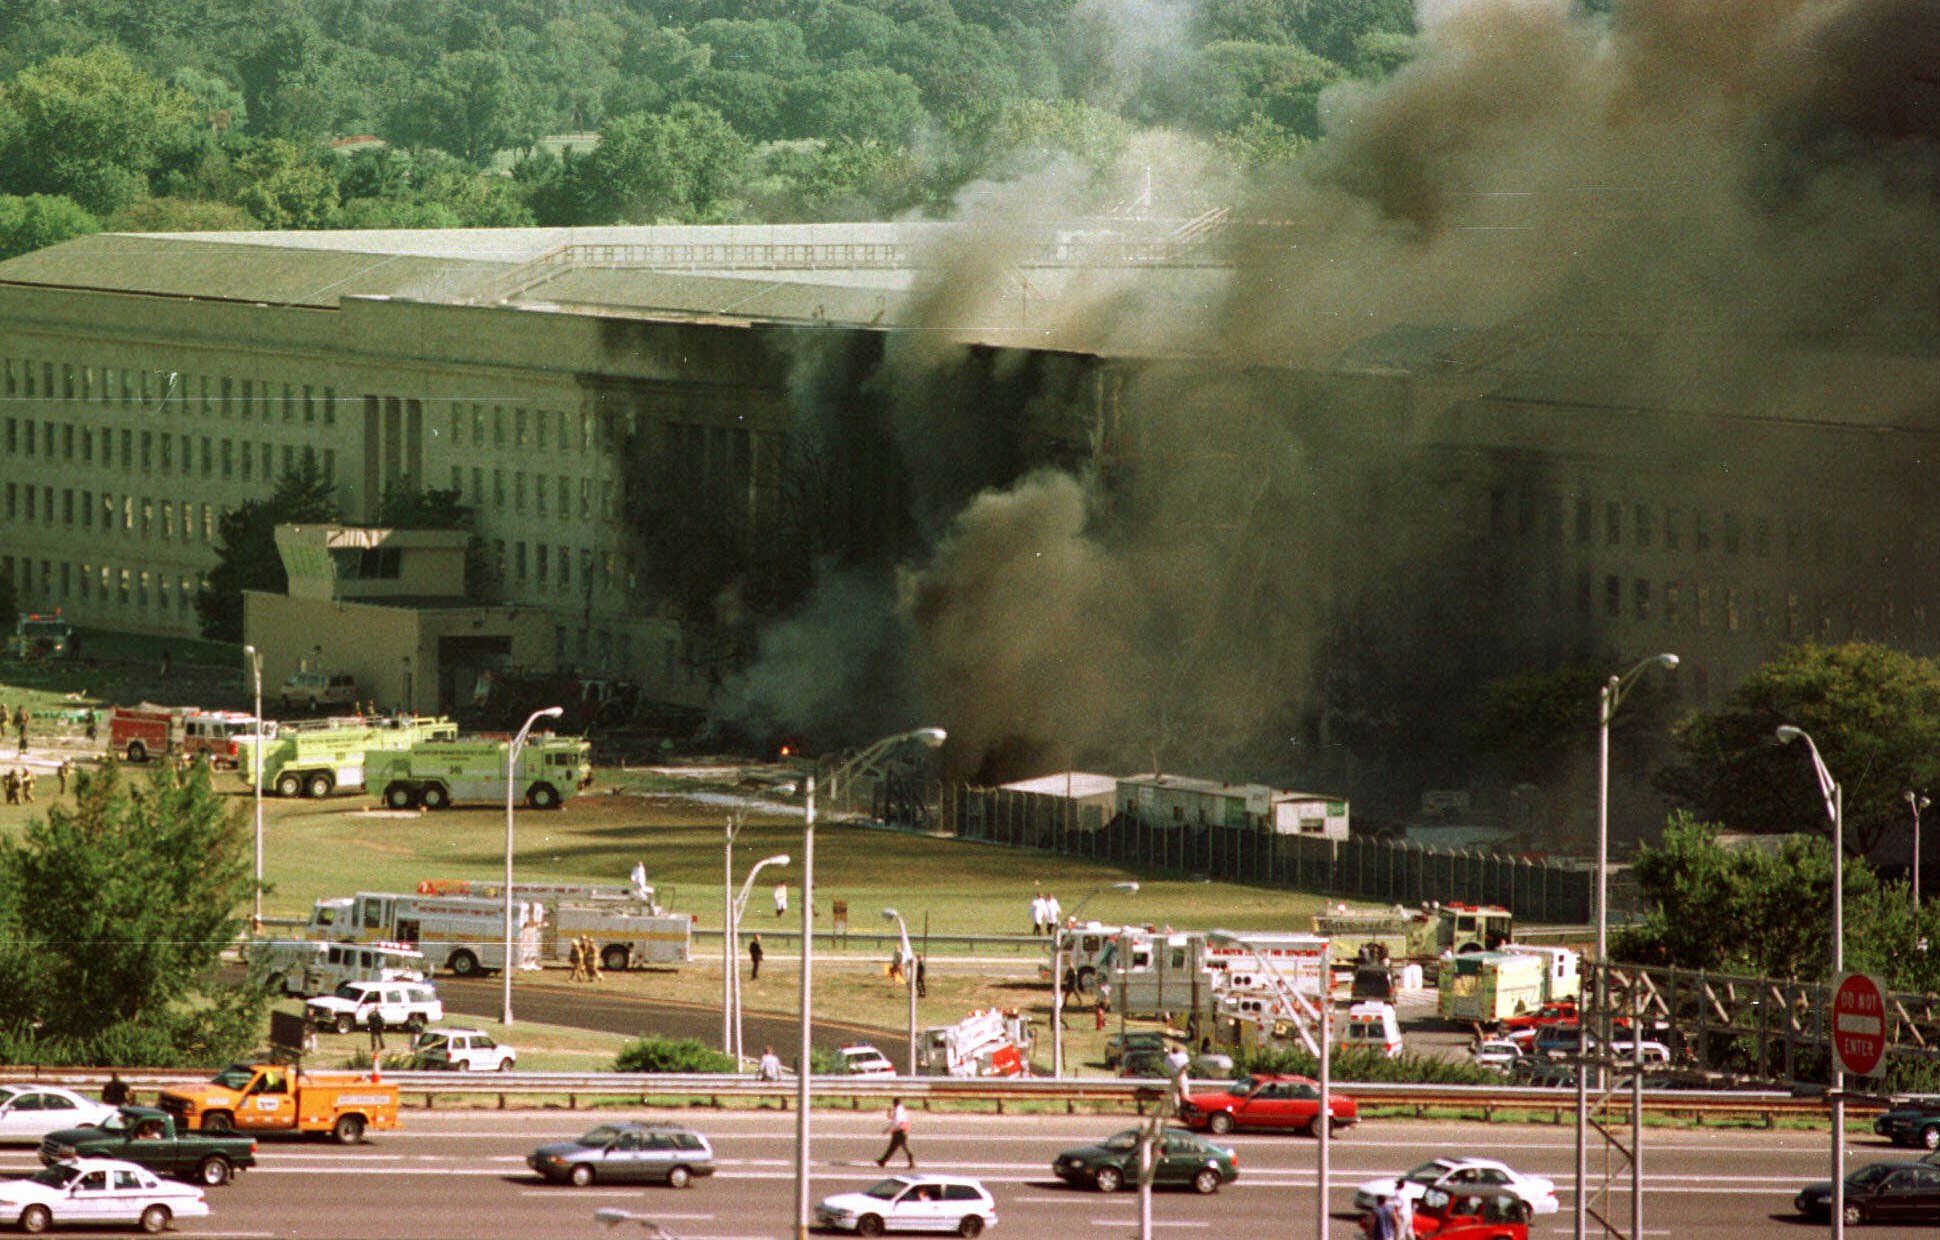 essays on how 9/11 changed the world Civilian changes since september 11 2001  over the decade, airport security  has tried different types of searches and screenings, introducing new equipment.